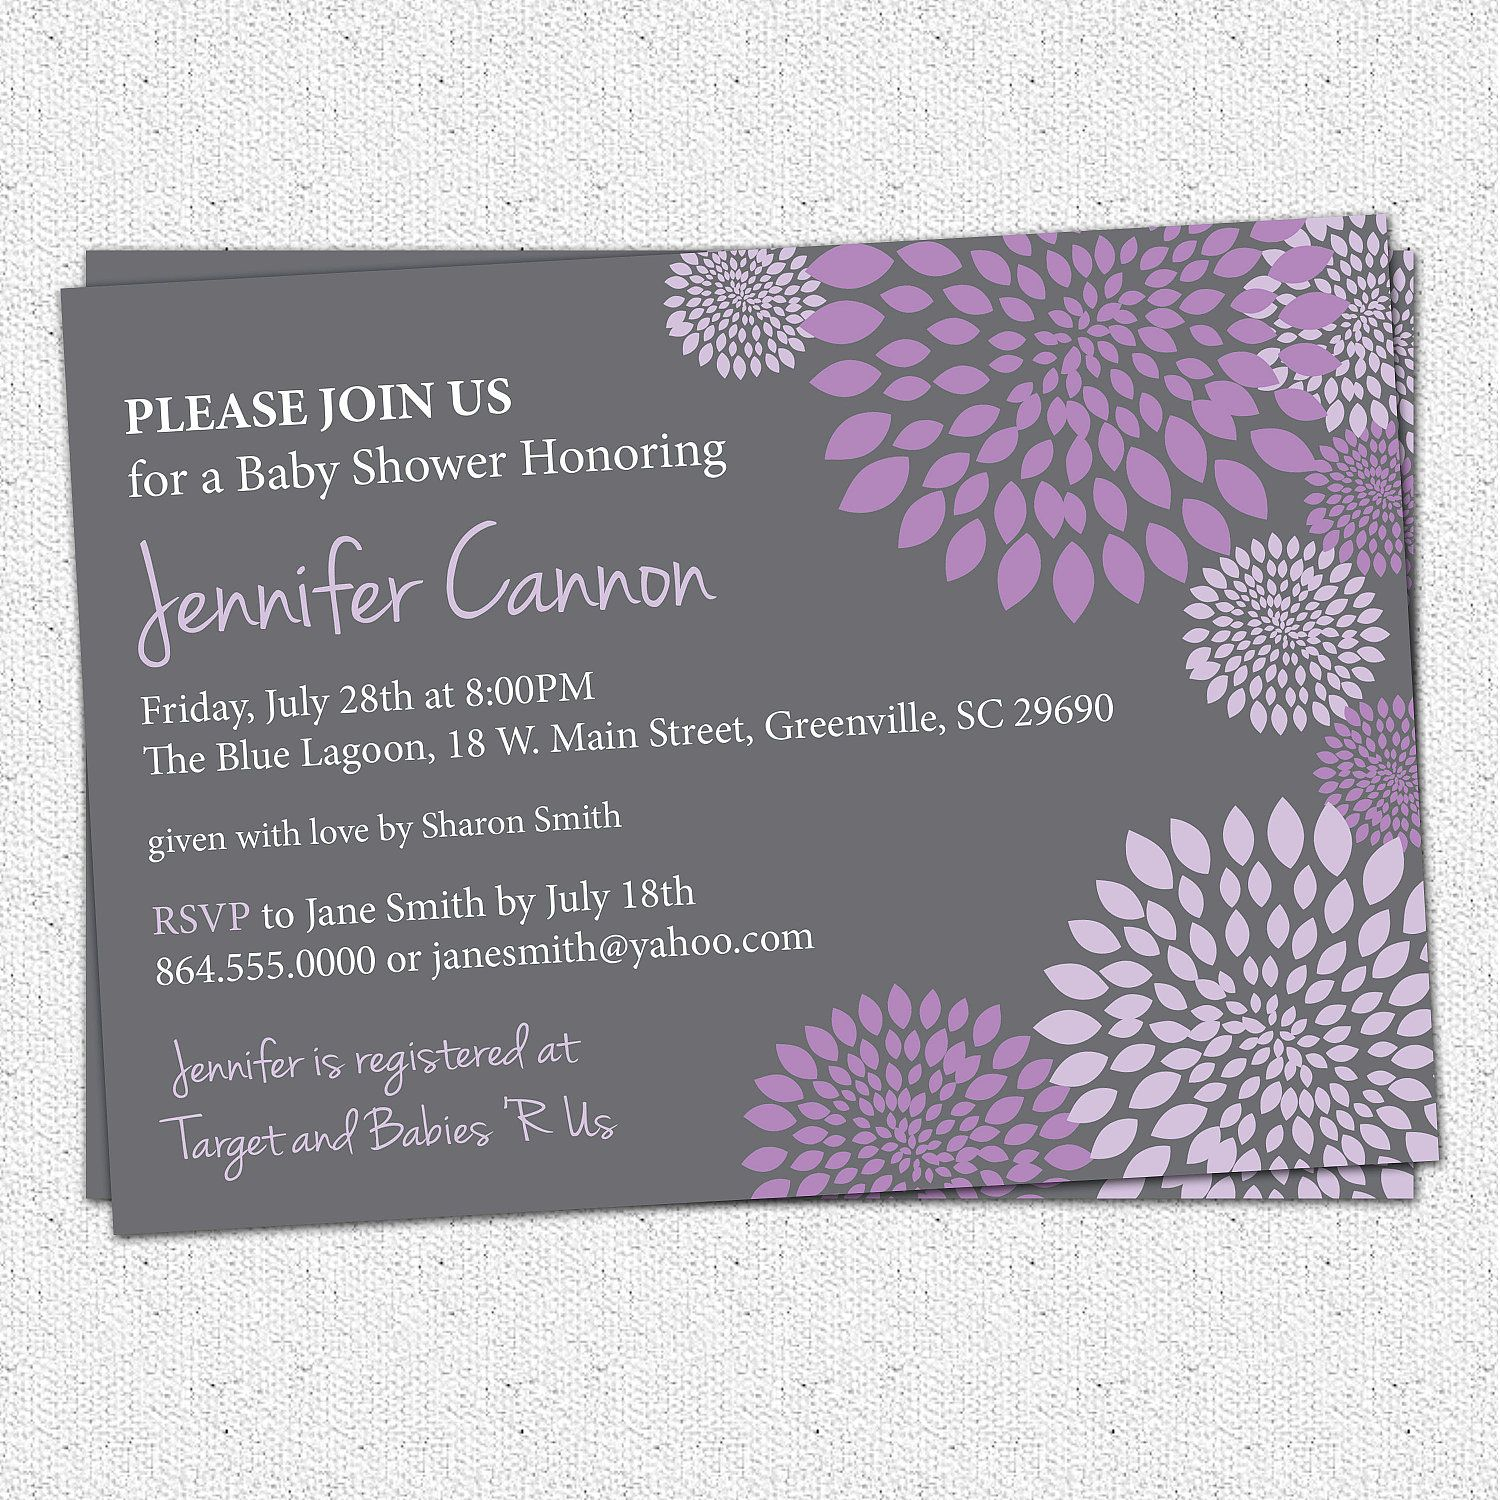 Baby bridal shower invitation printable girl purple and lavender and baby bridal shower invitation printable girl purple and lavender and charcoal grey gray floral modern diy digital file filmwisefo Gallery